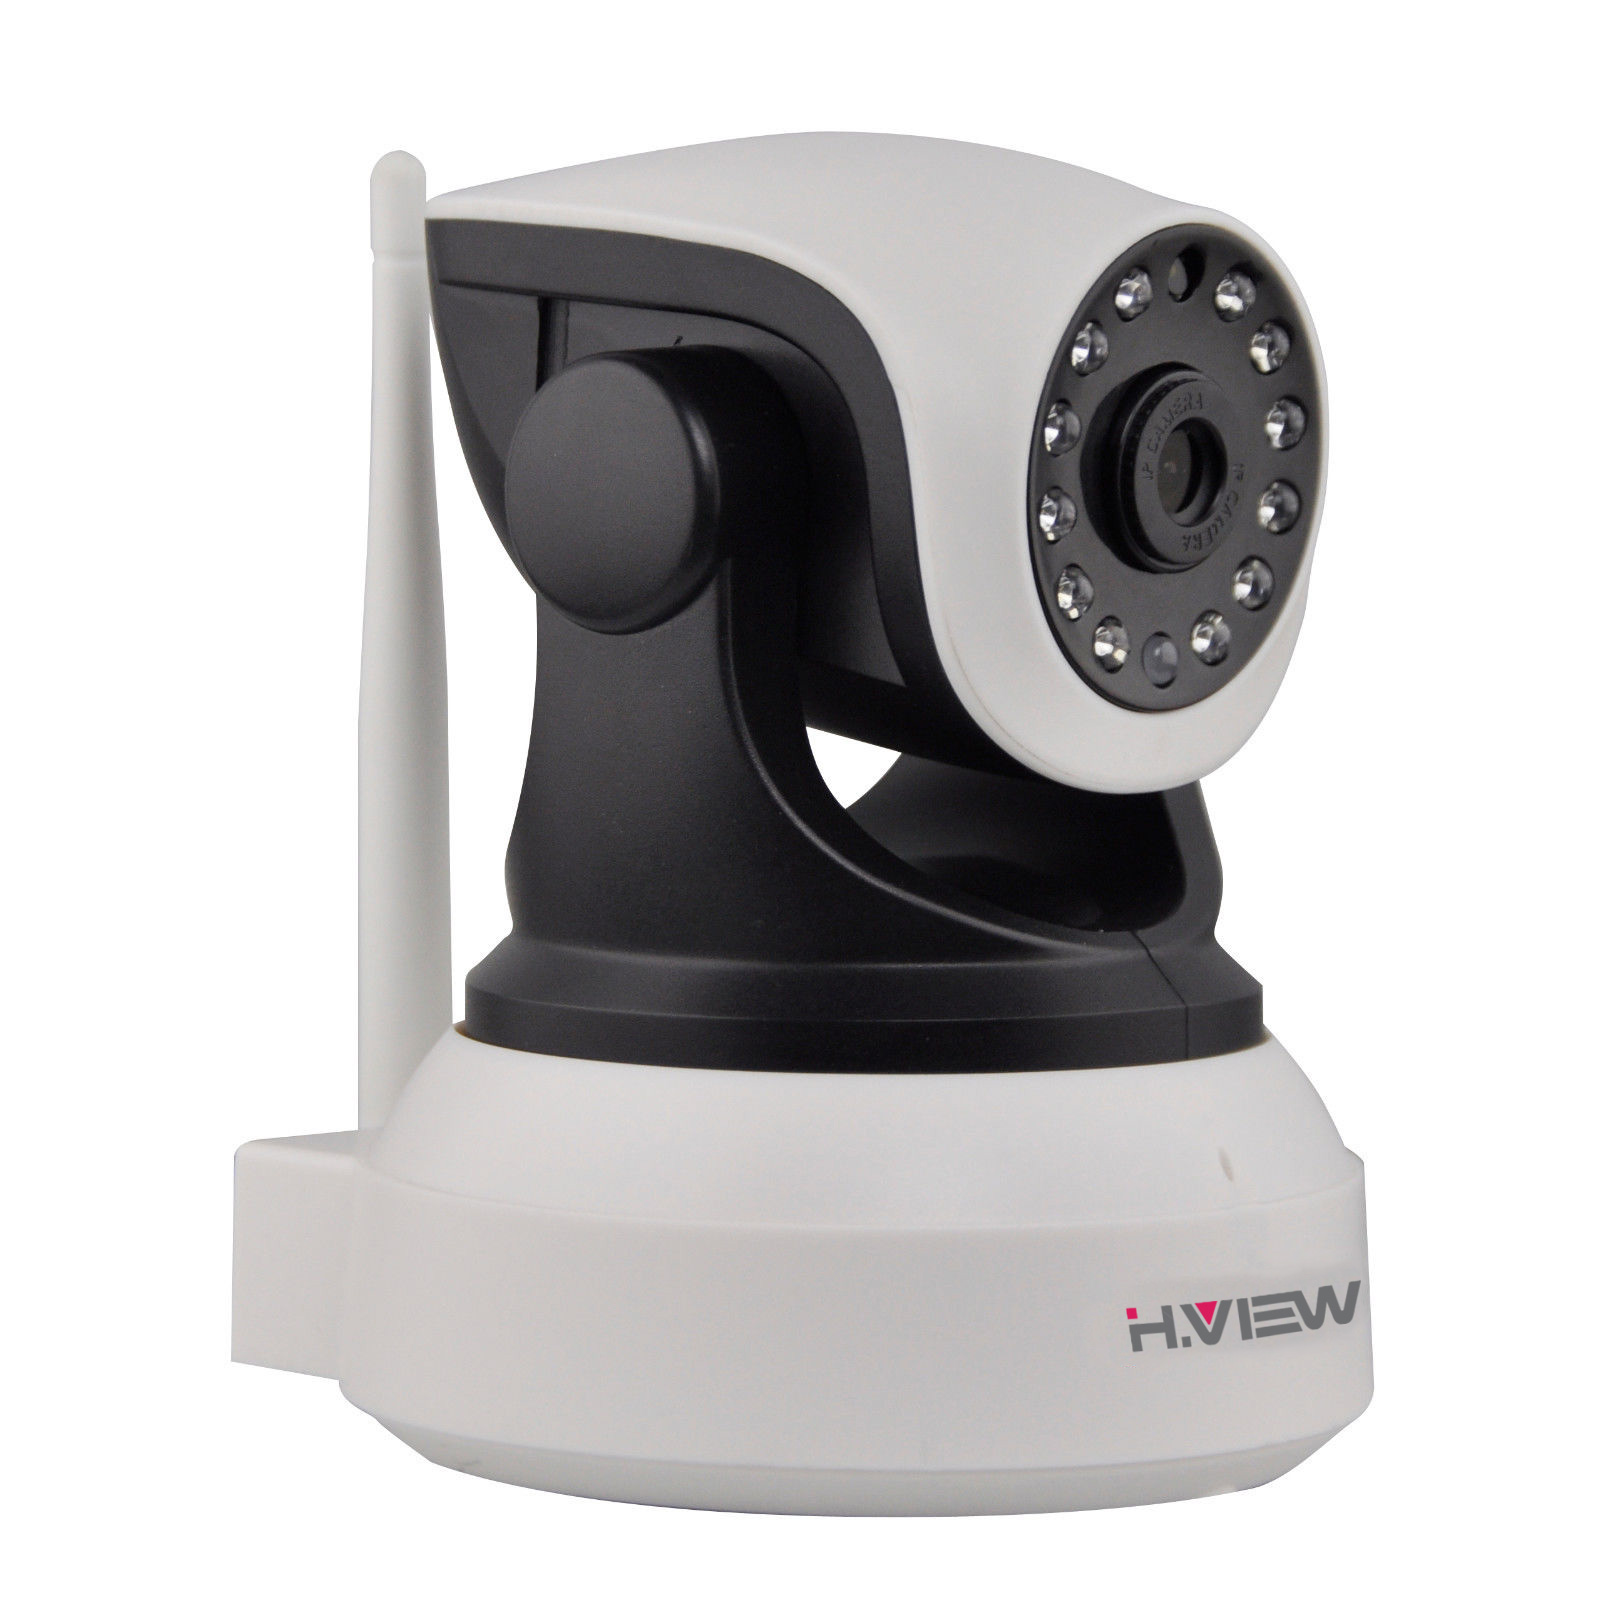 H.View WiFi Wireless 720P IP Camera WiFi IP Camera Two Way Audio Baby Monitor Pan Tilt Security Camera Easy QR CODE Scan Connect(China (Mainland))